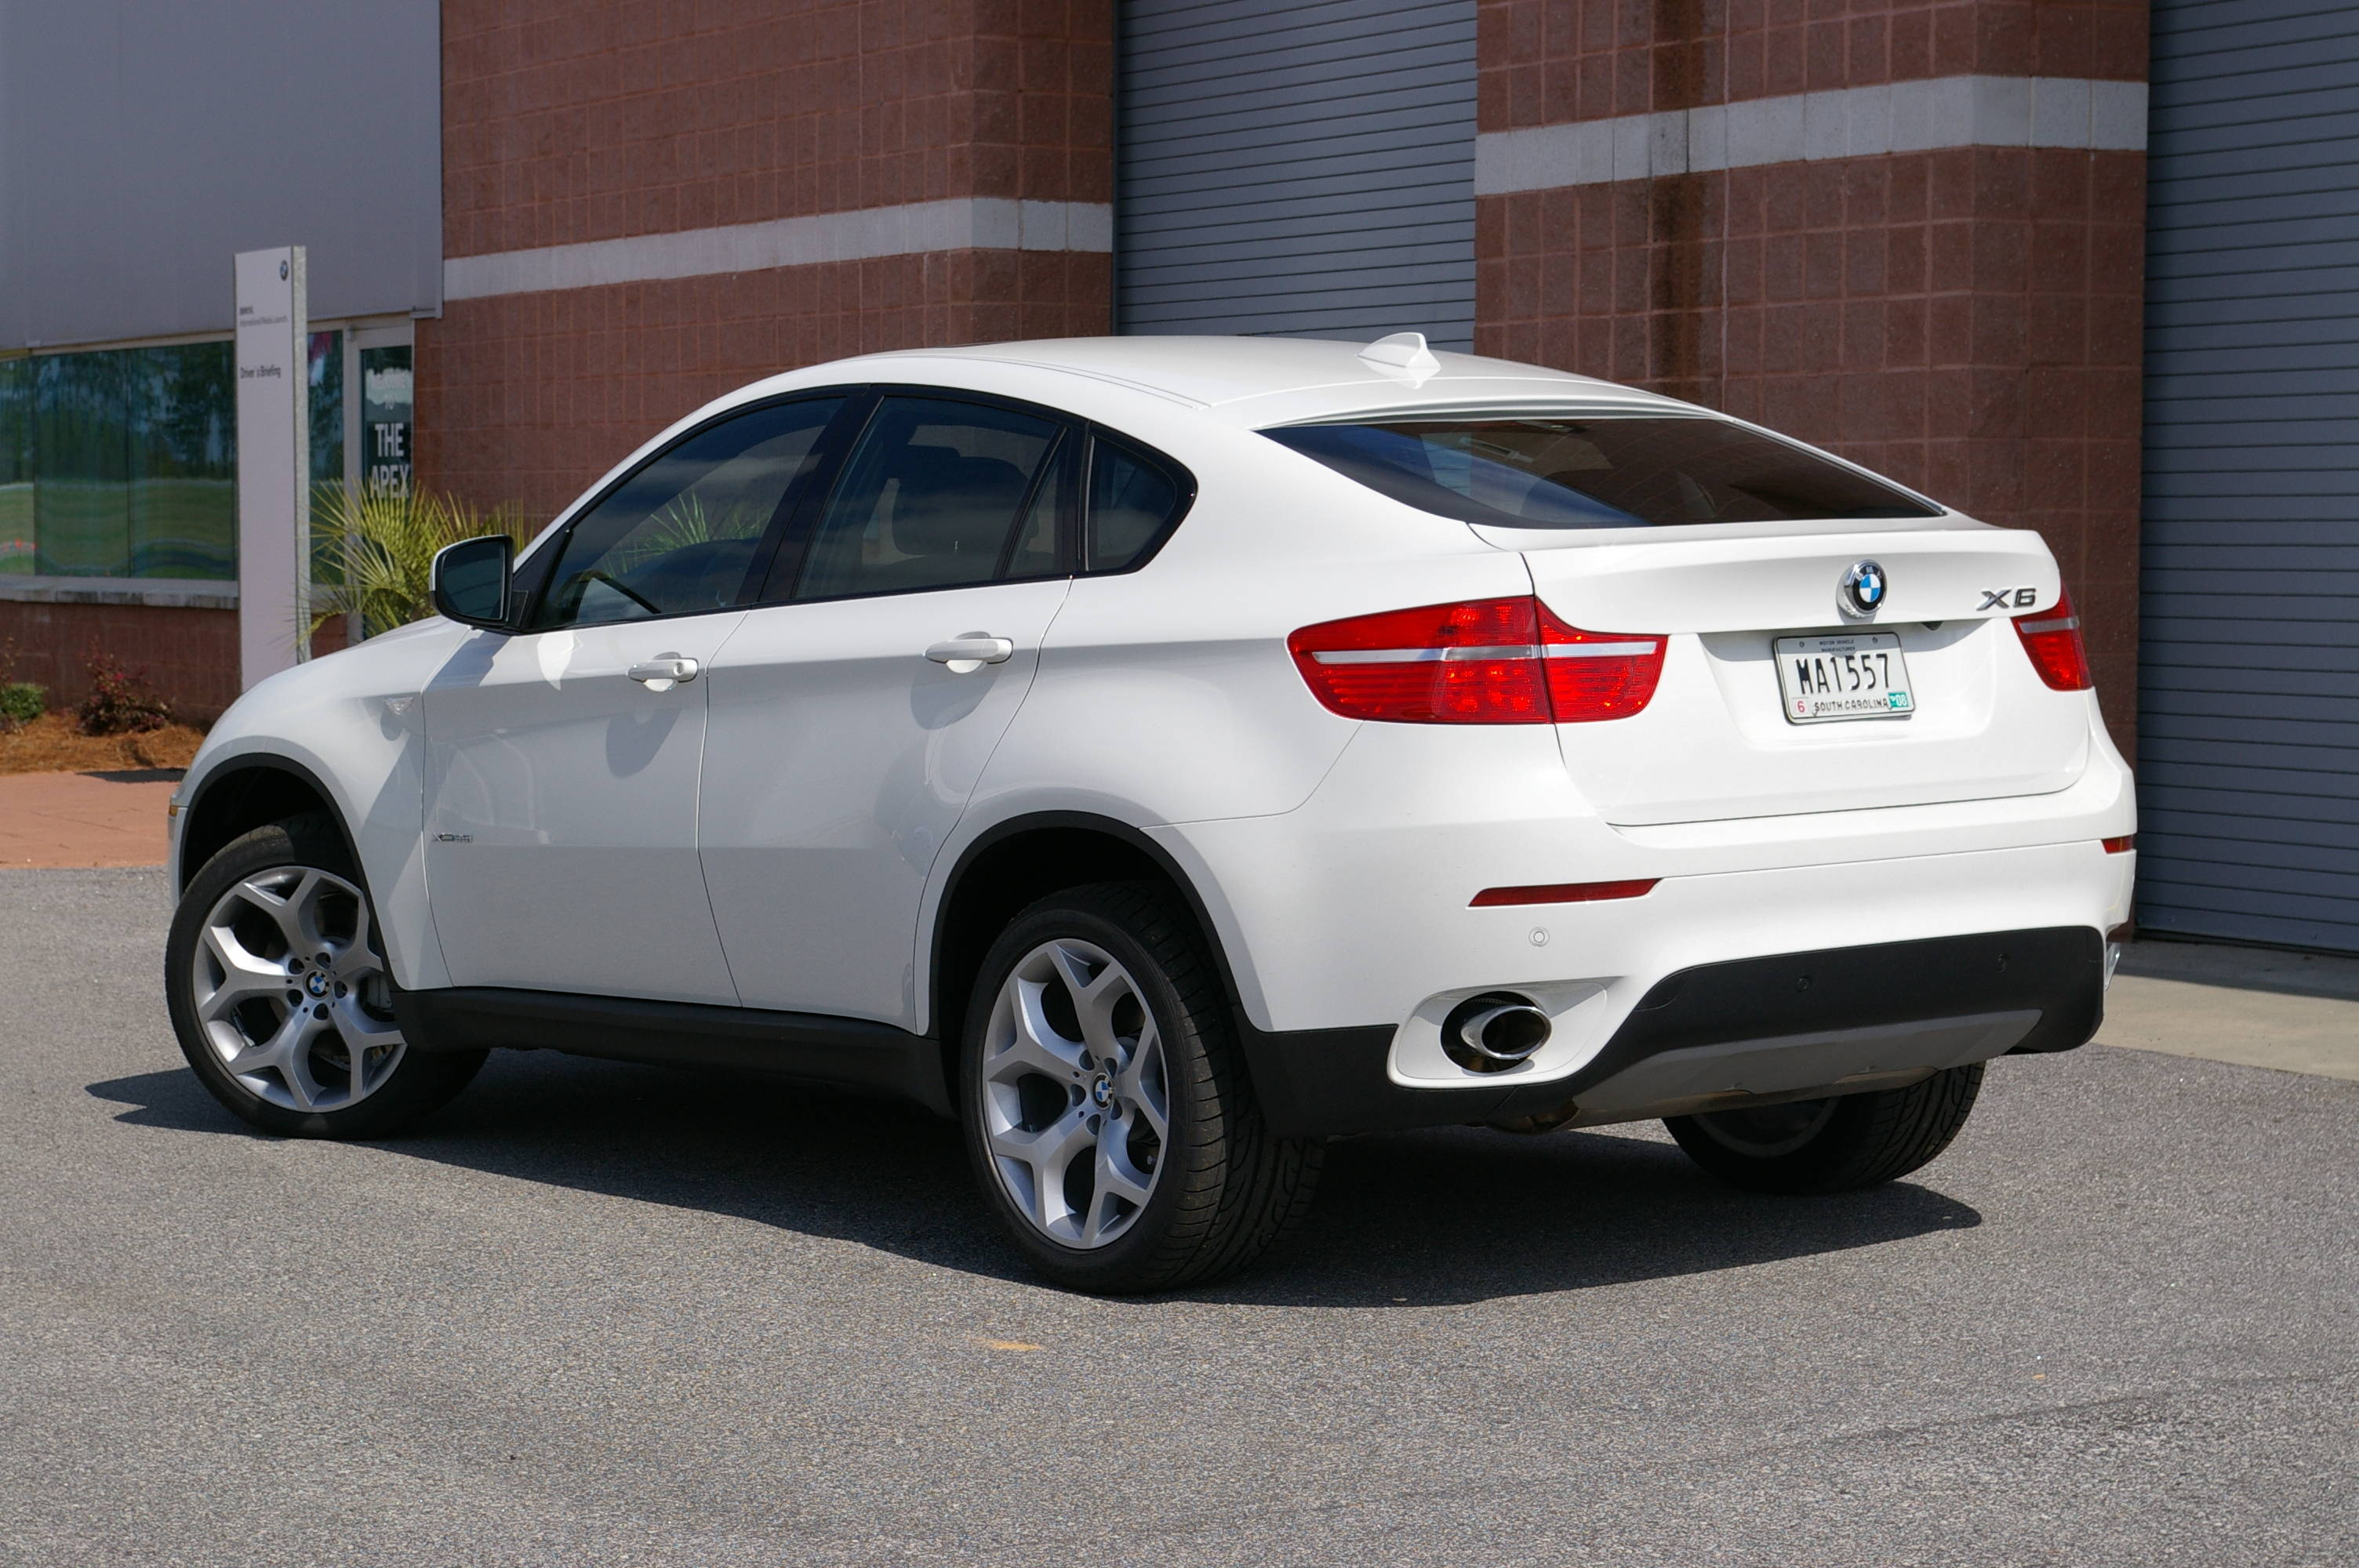 2014 BMW X6 - Information and photos - ZombieDrive